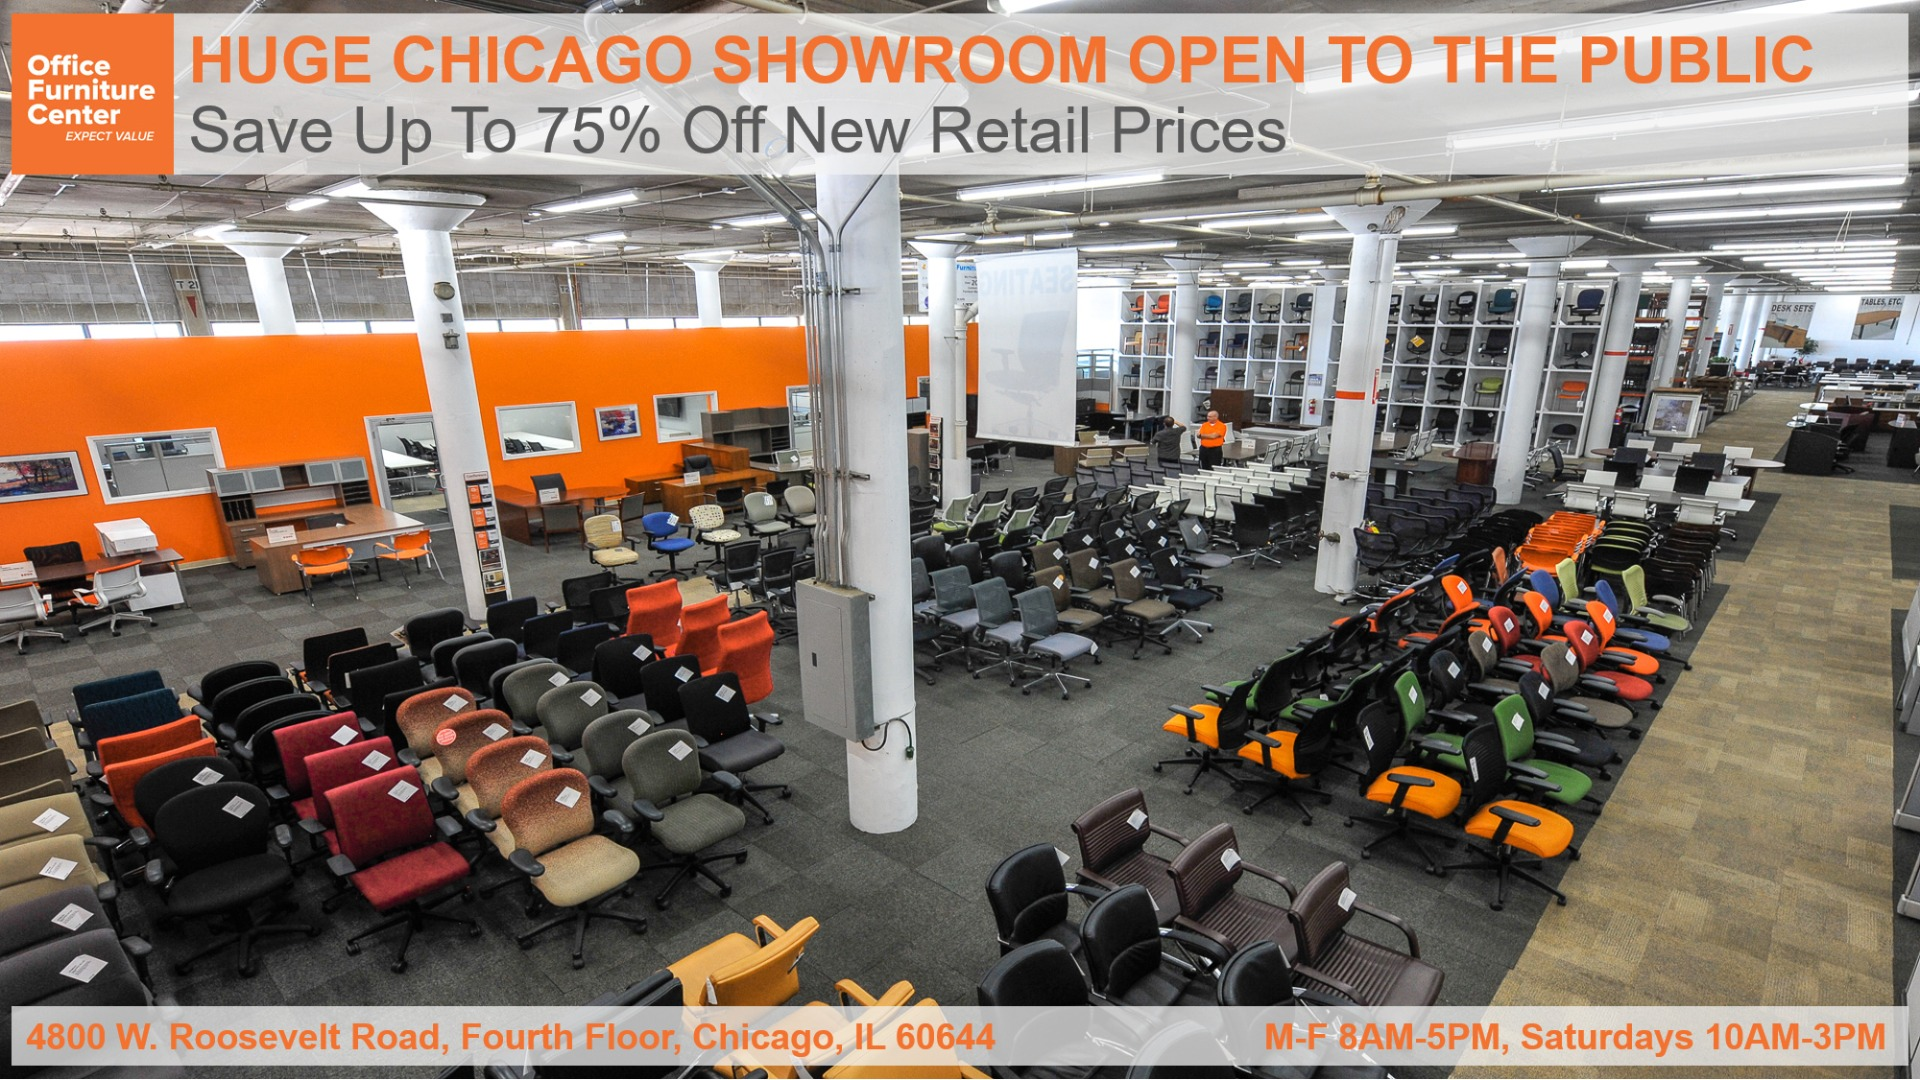 Pleasing New And Used Office Furniture Chicago Office Furniture Center Lamtechconsult Wood Chair Design Ideas Lamtechconsultcom